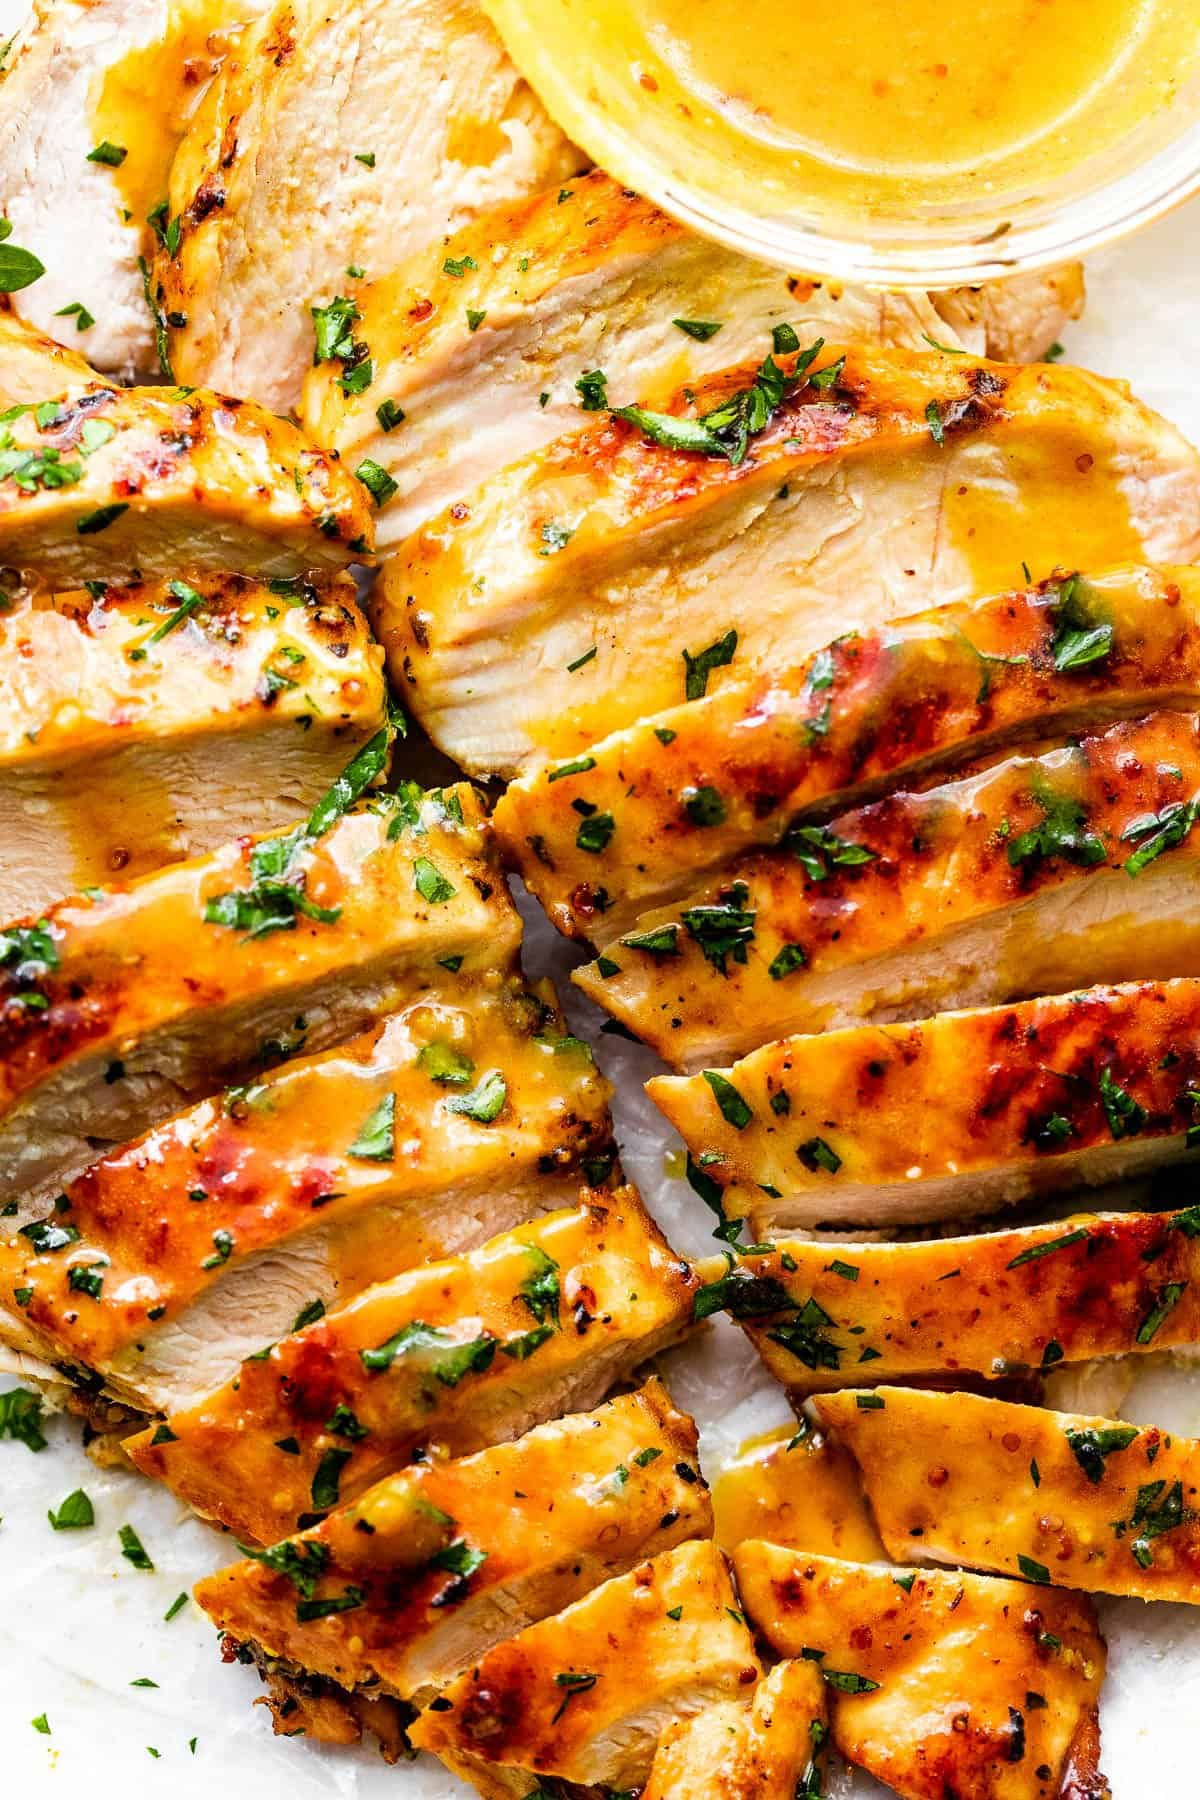 two grilled honey mustard chicken breasts cut into thin slices and served with honey mustard sauce on the side